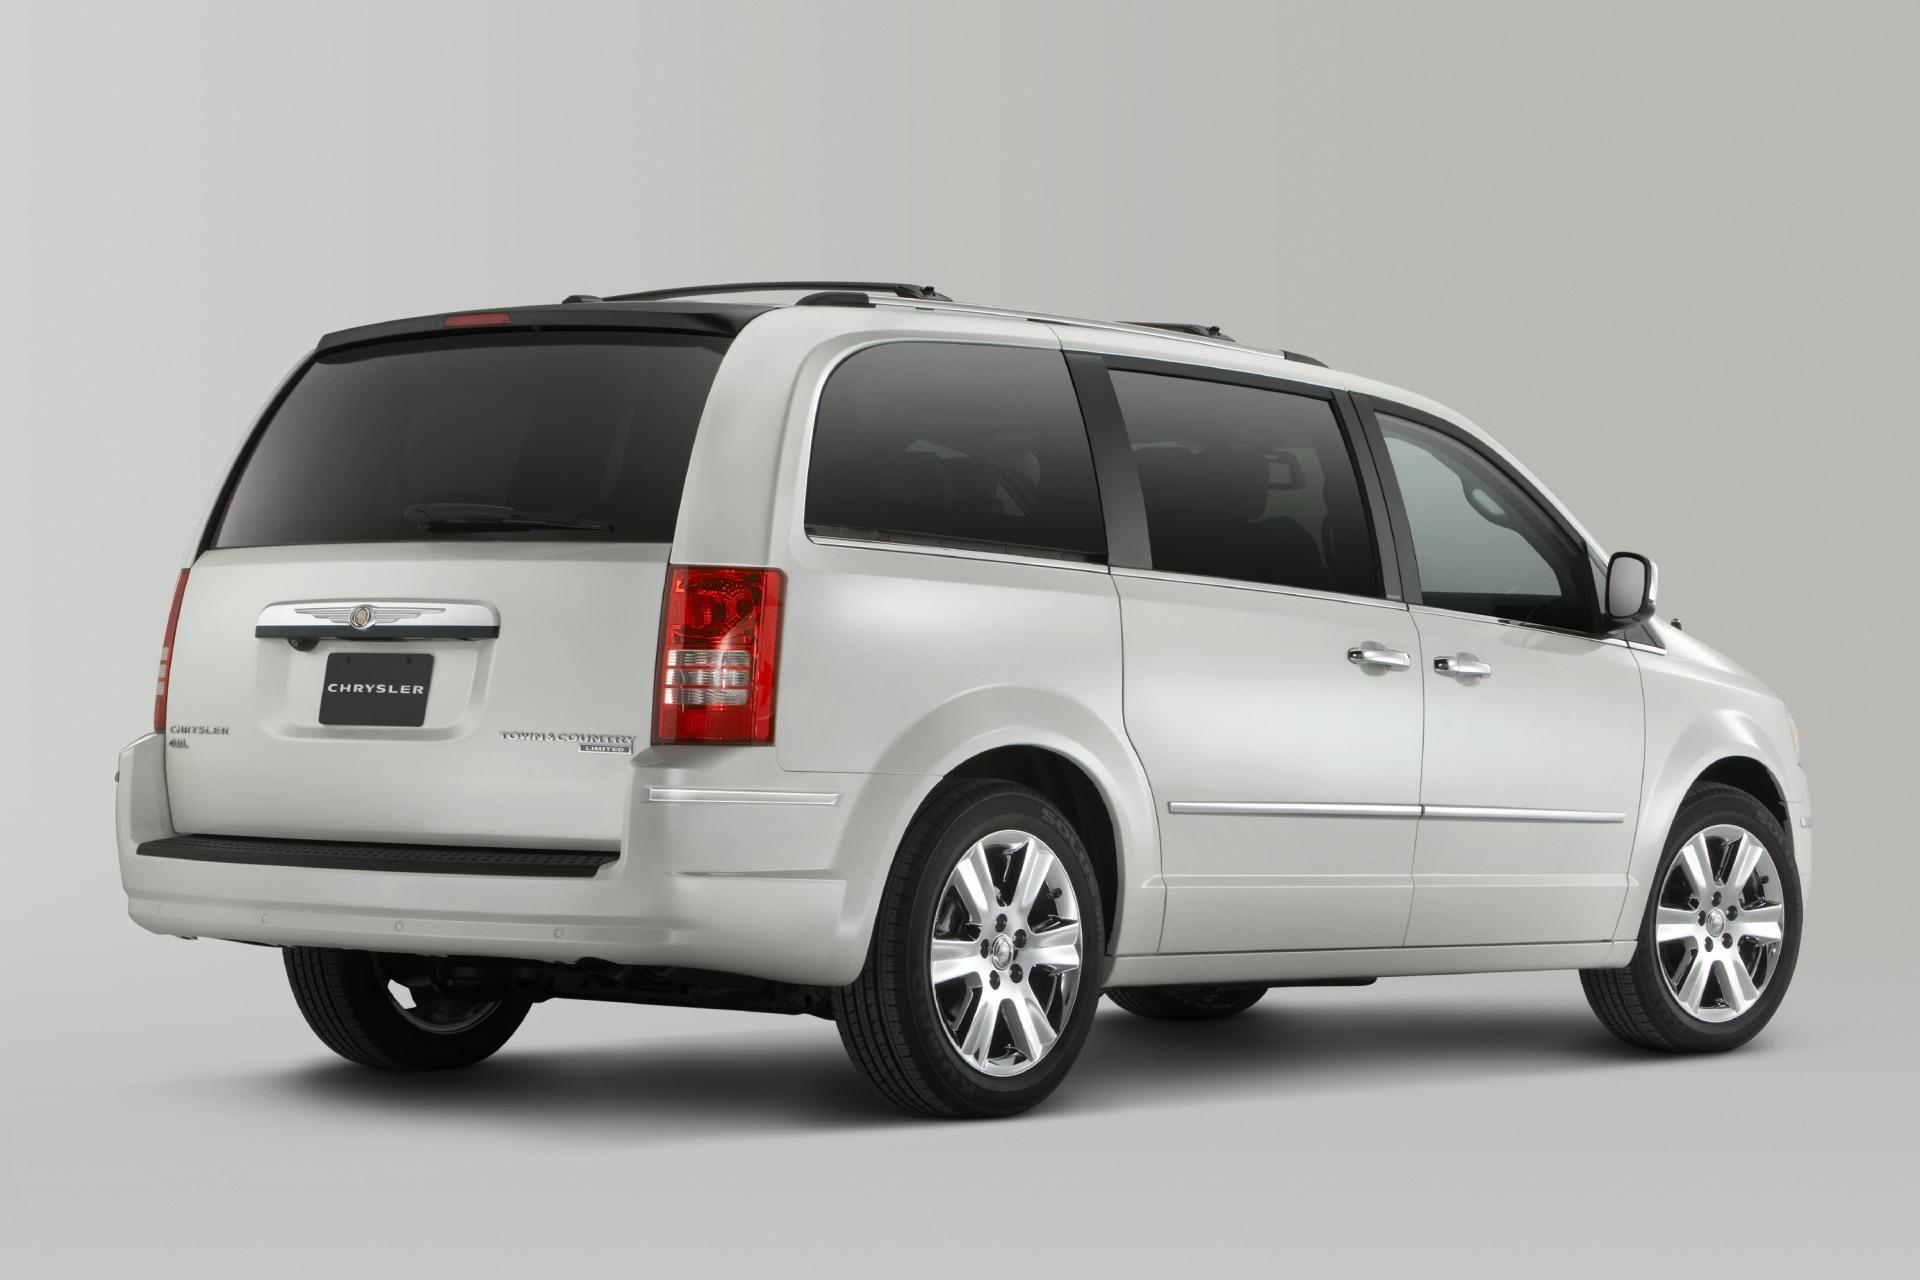 2010 chrysler town country images photo 2010 chrysler town n country. Black Bedroom Furniture Sets. Home Design Ideas